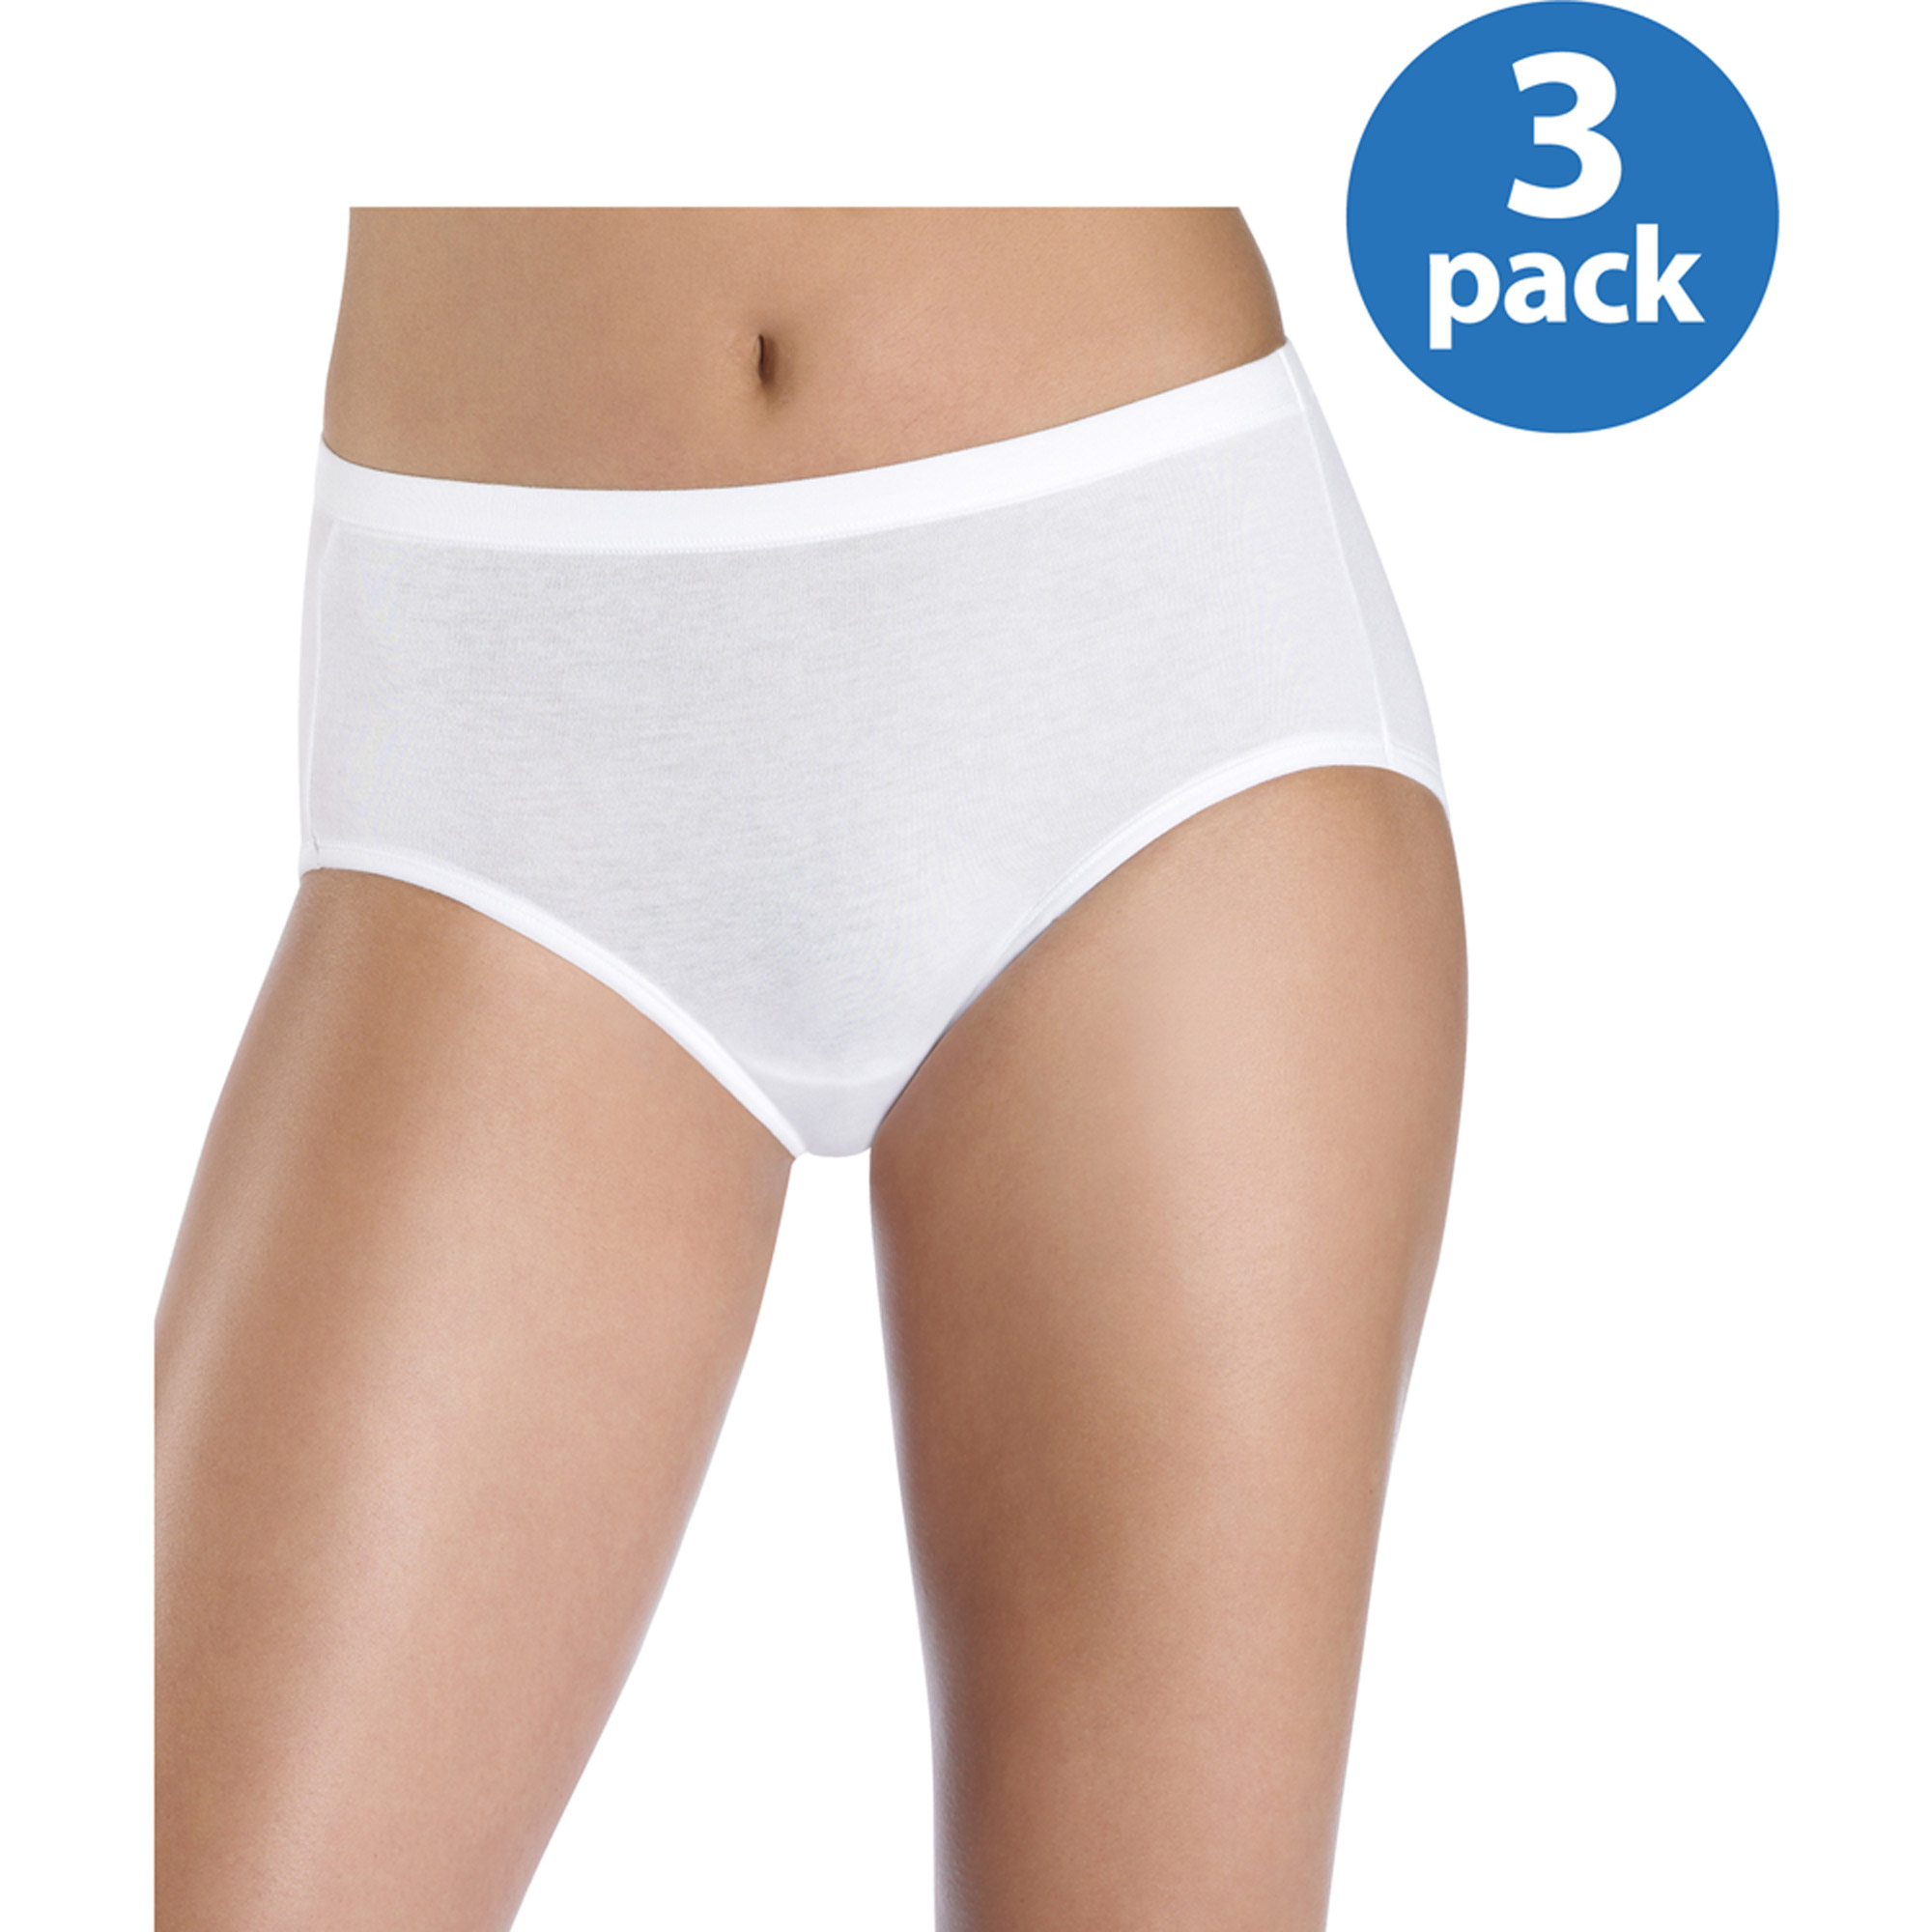 Hanes Women's 3-Pack Stretch Cotton ComfortSoft Waistband Low-Rise Brief Panties